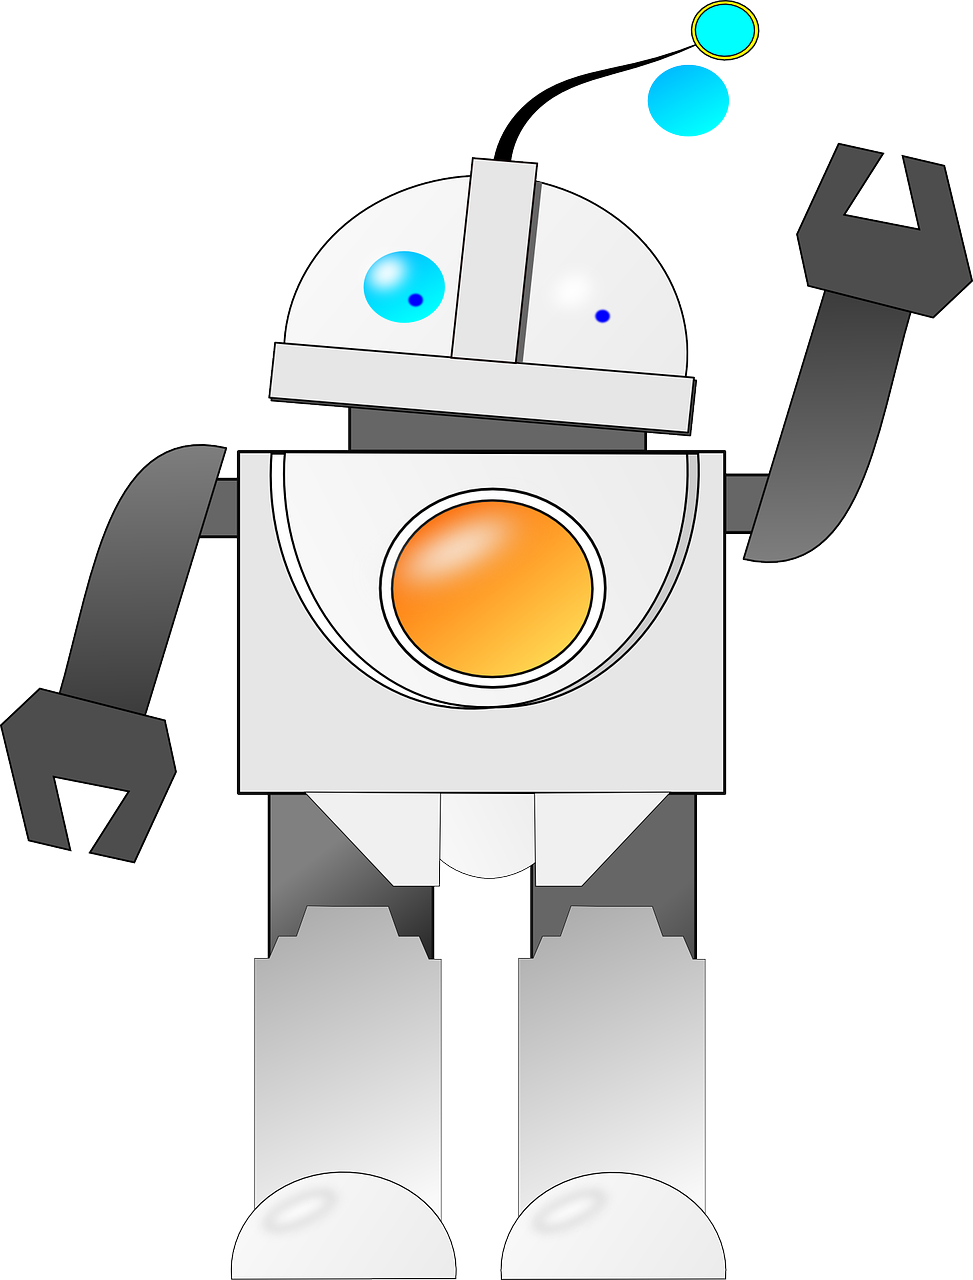 Future Robot Android Machine